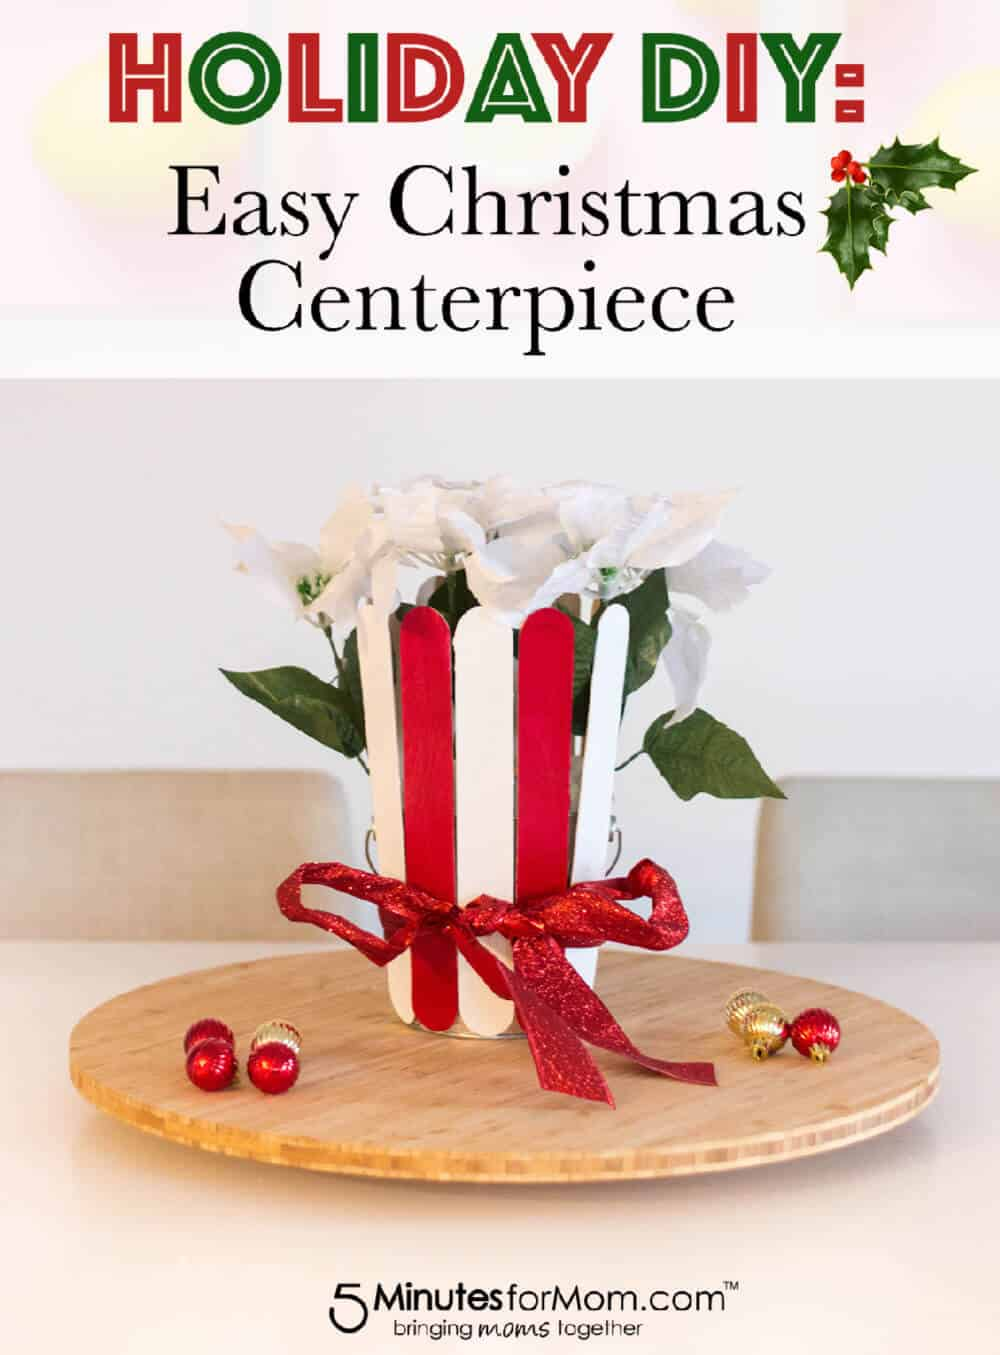 Easy Christmas Centerpiece For Your Holiday Tablescape - Holiday DIY #holidaydecor #christmasdecor